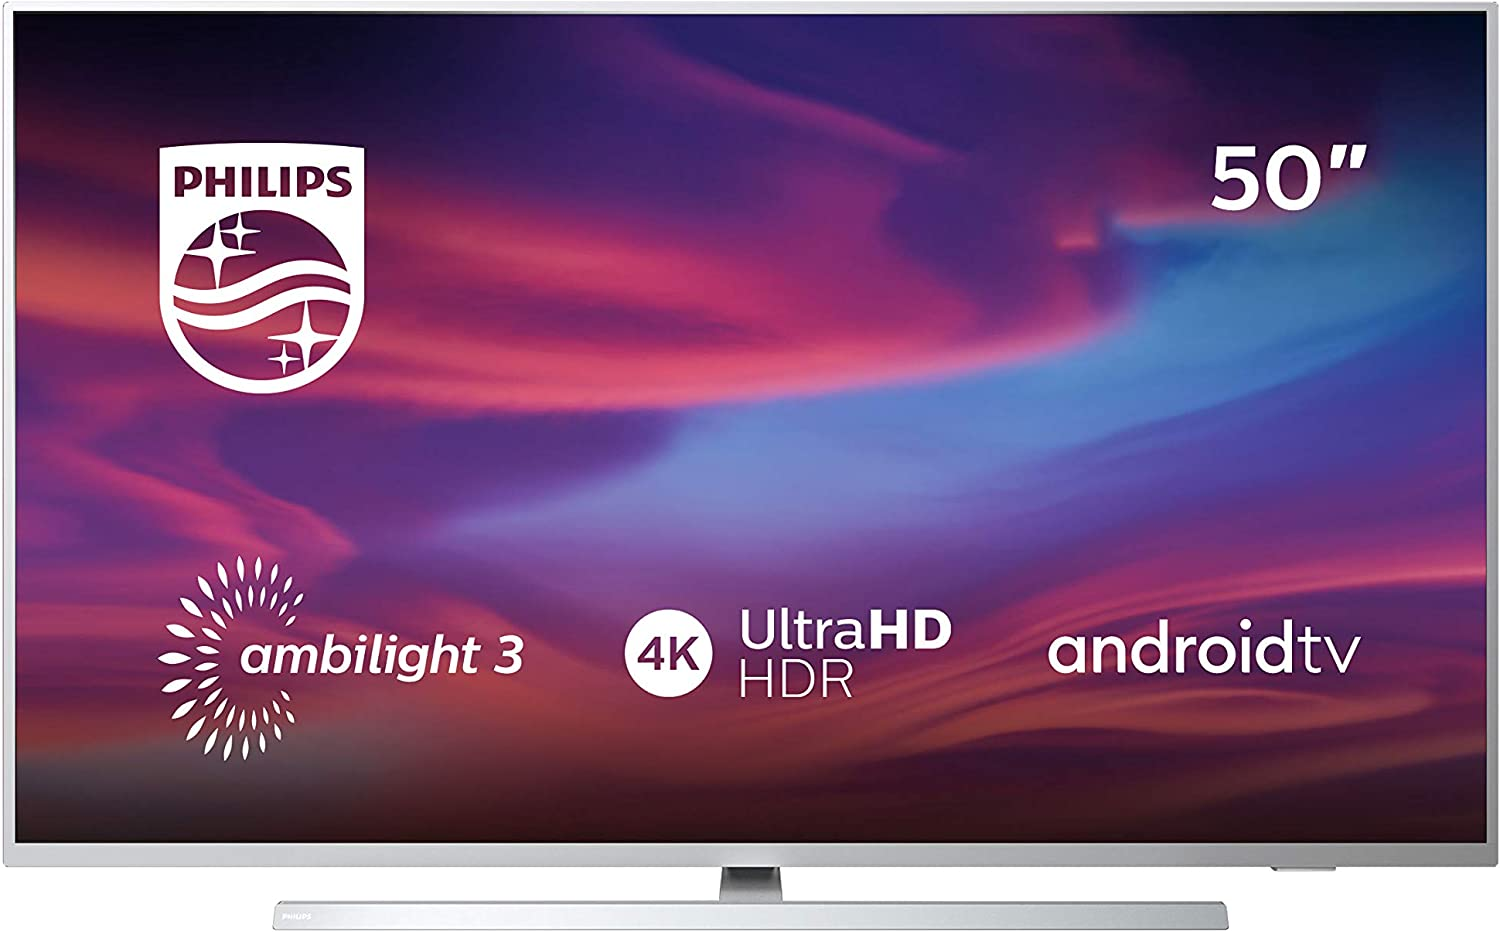 Televisor Philips Ambilight 50PUS7304/12 Smart TV de 126 cm (50 pulgadas)  con 4K UHD, LED TV, HDR 10+, Android TV, Google Assistant, Dolby Atmos y  compatibilidad con Alexa, color plata claro: Amazon.es: Electrónica